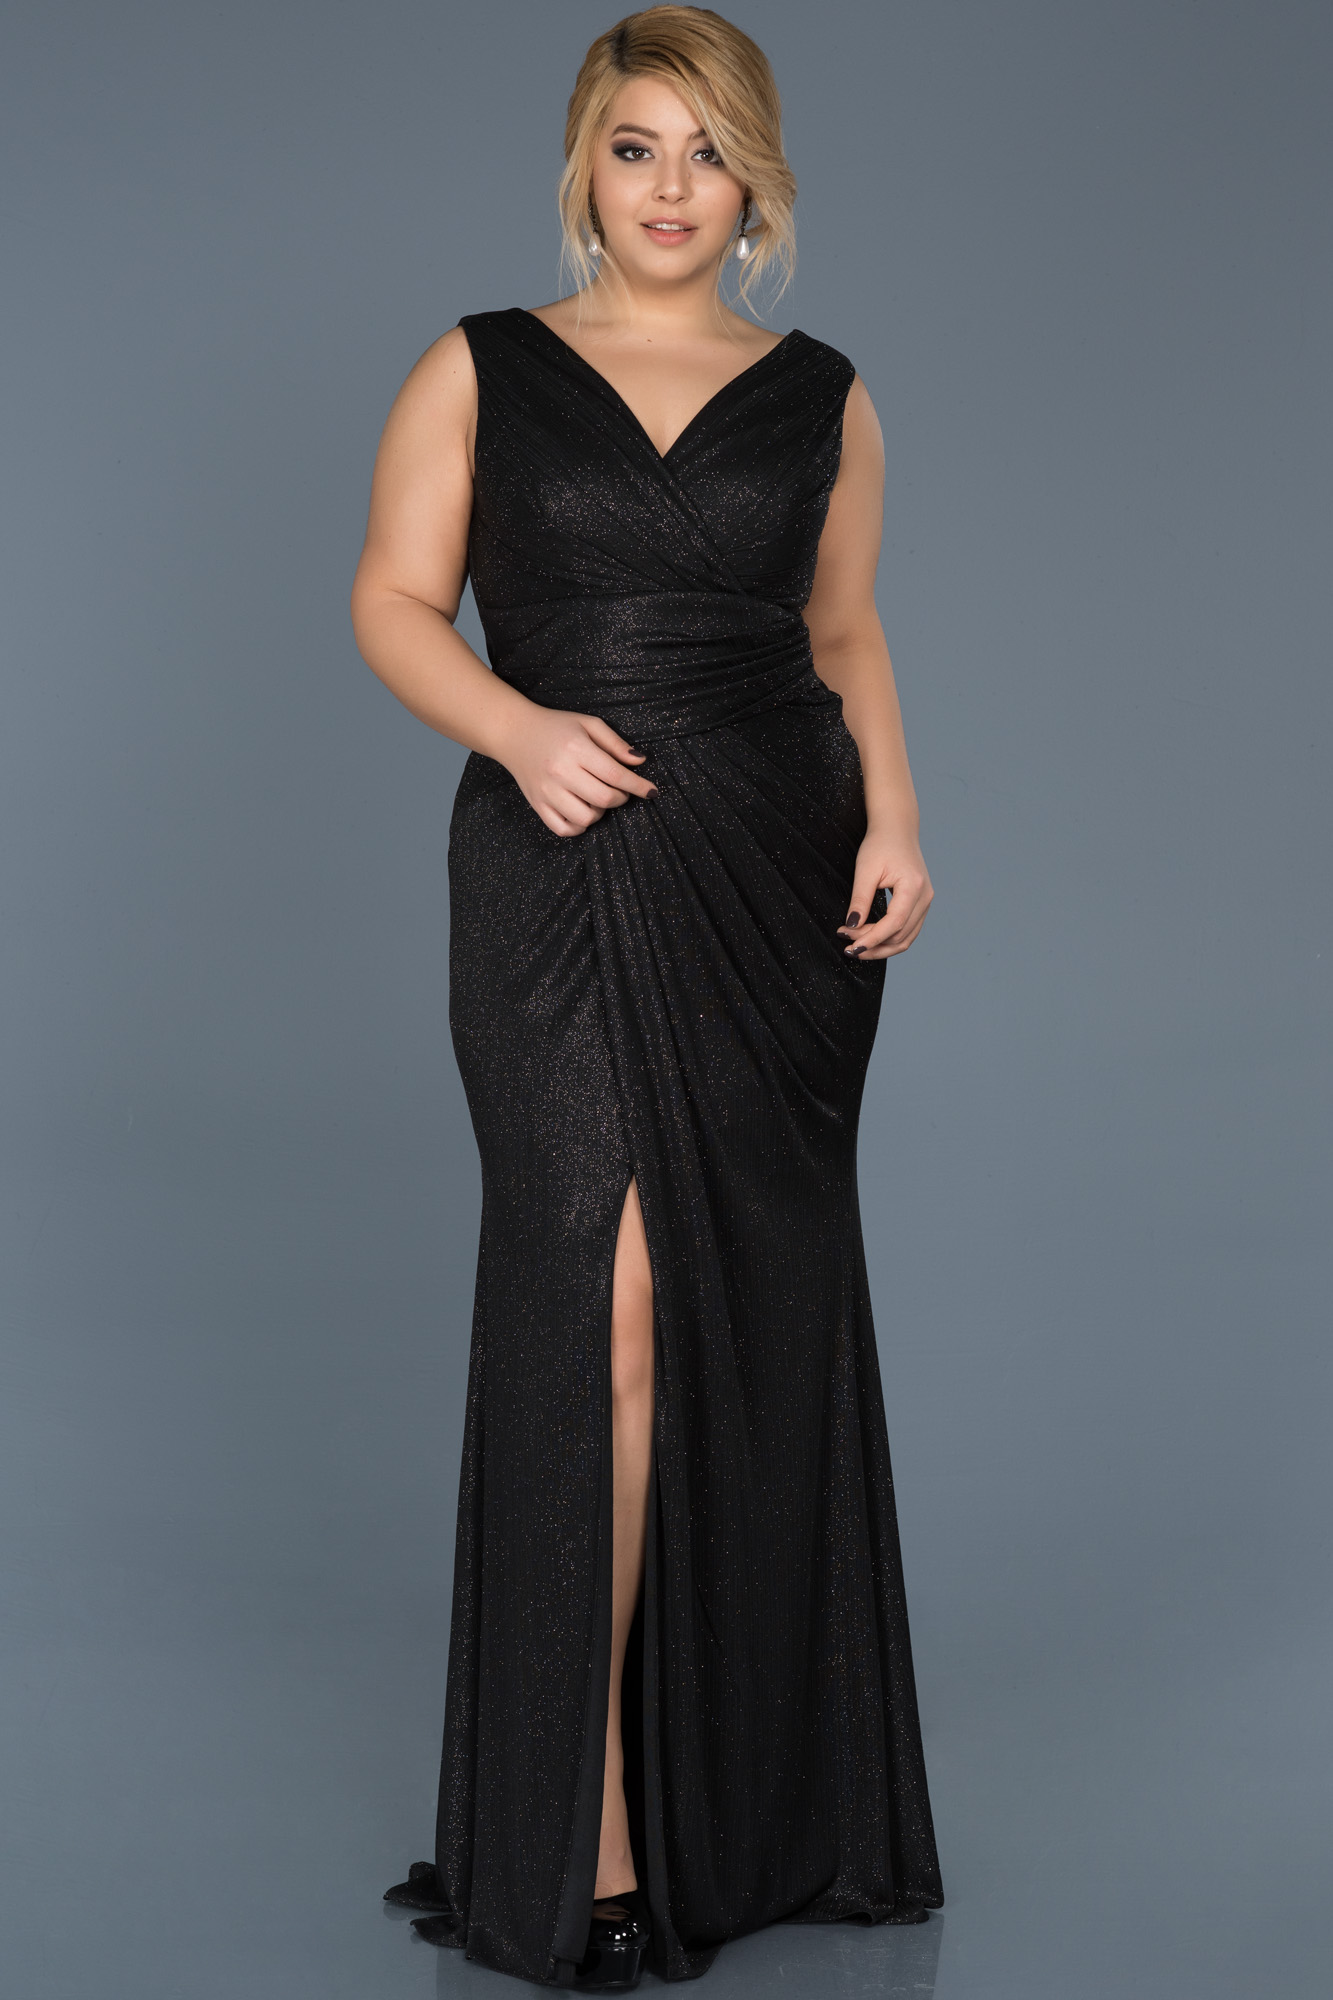 Full Length Plus Size Evening Dresses – DACC